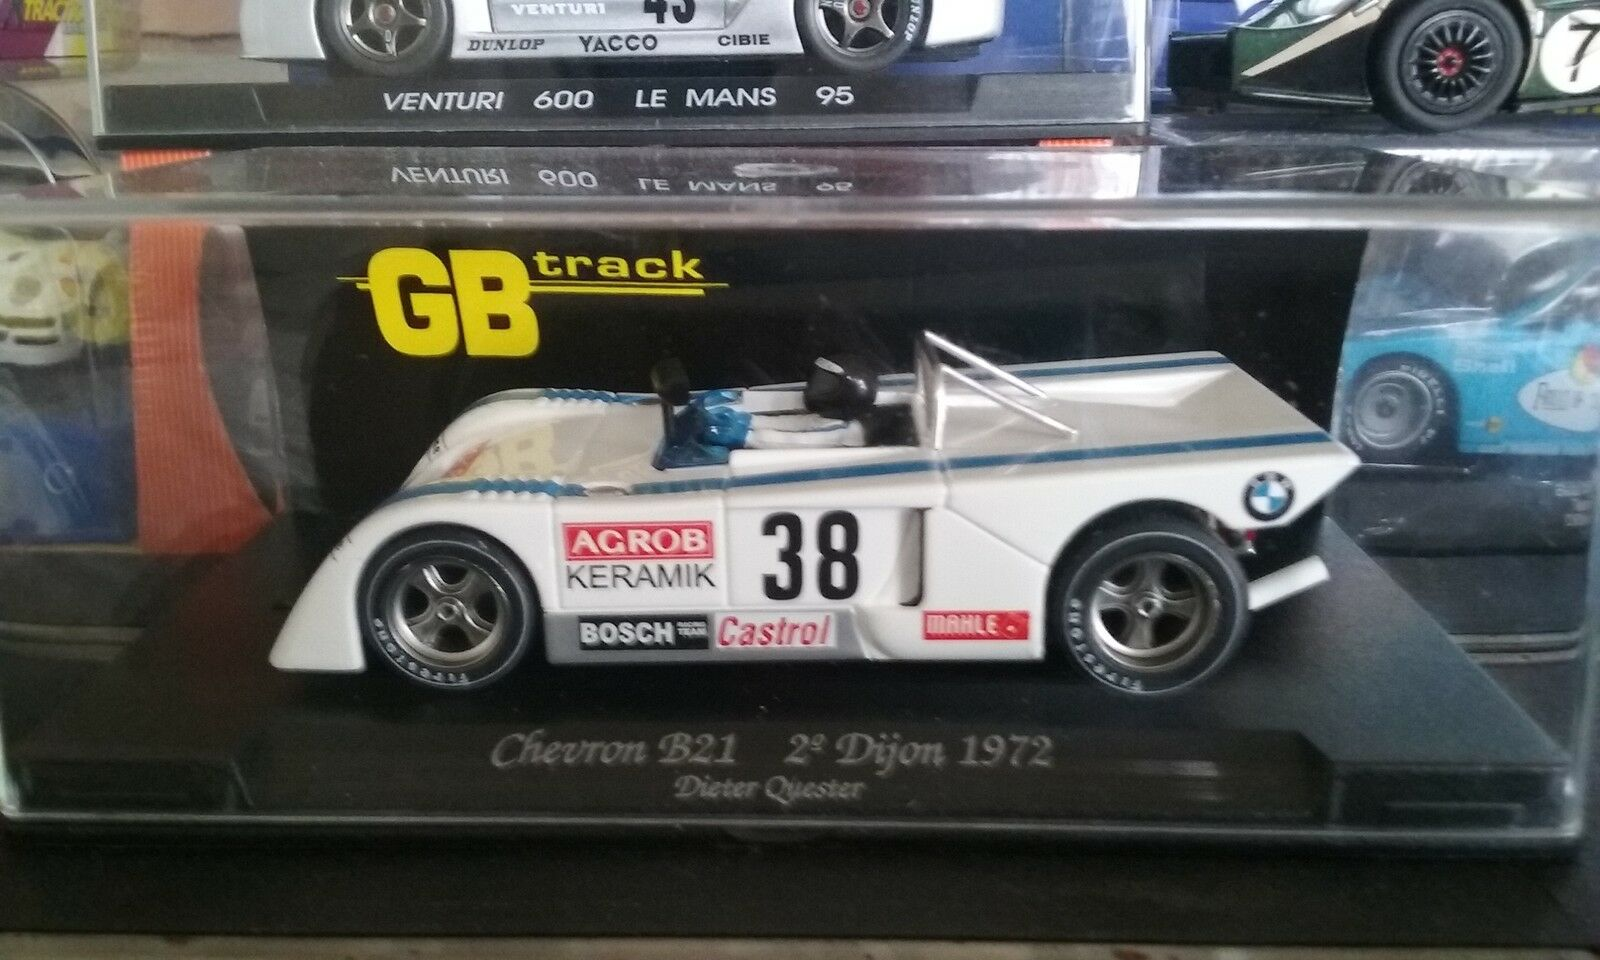 Fly GB  Chevron B21 2 Dijon 1972 (Dieter Quester )New